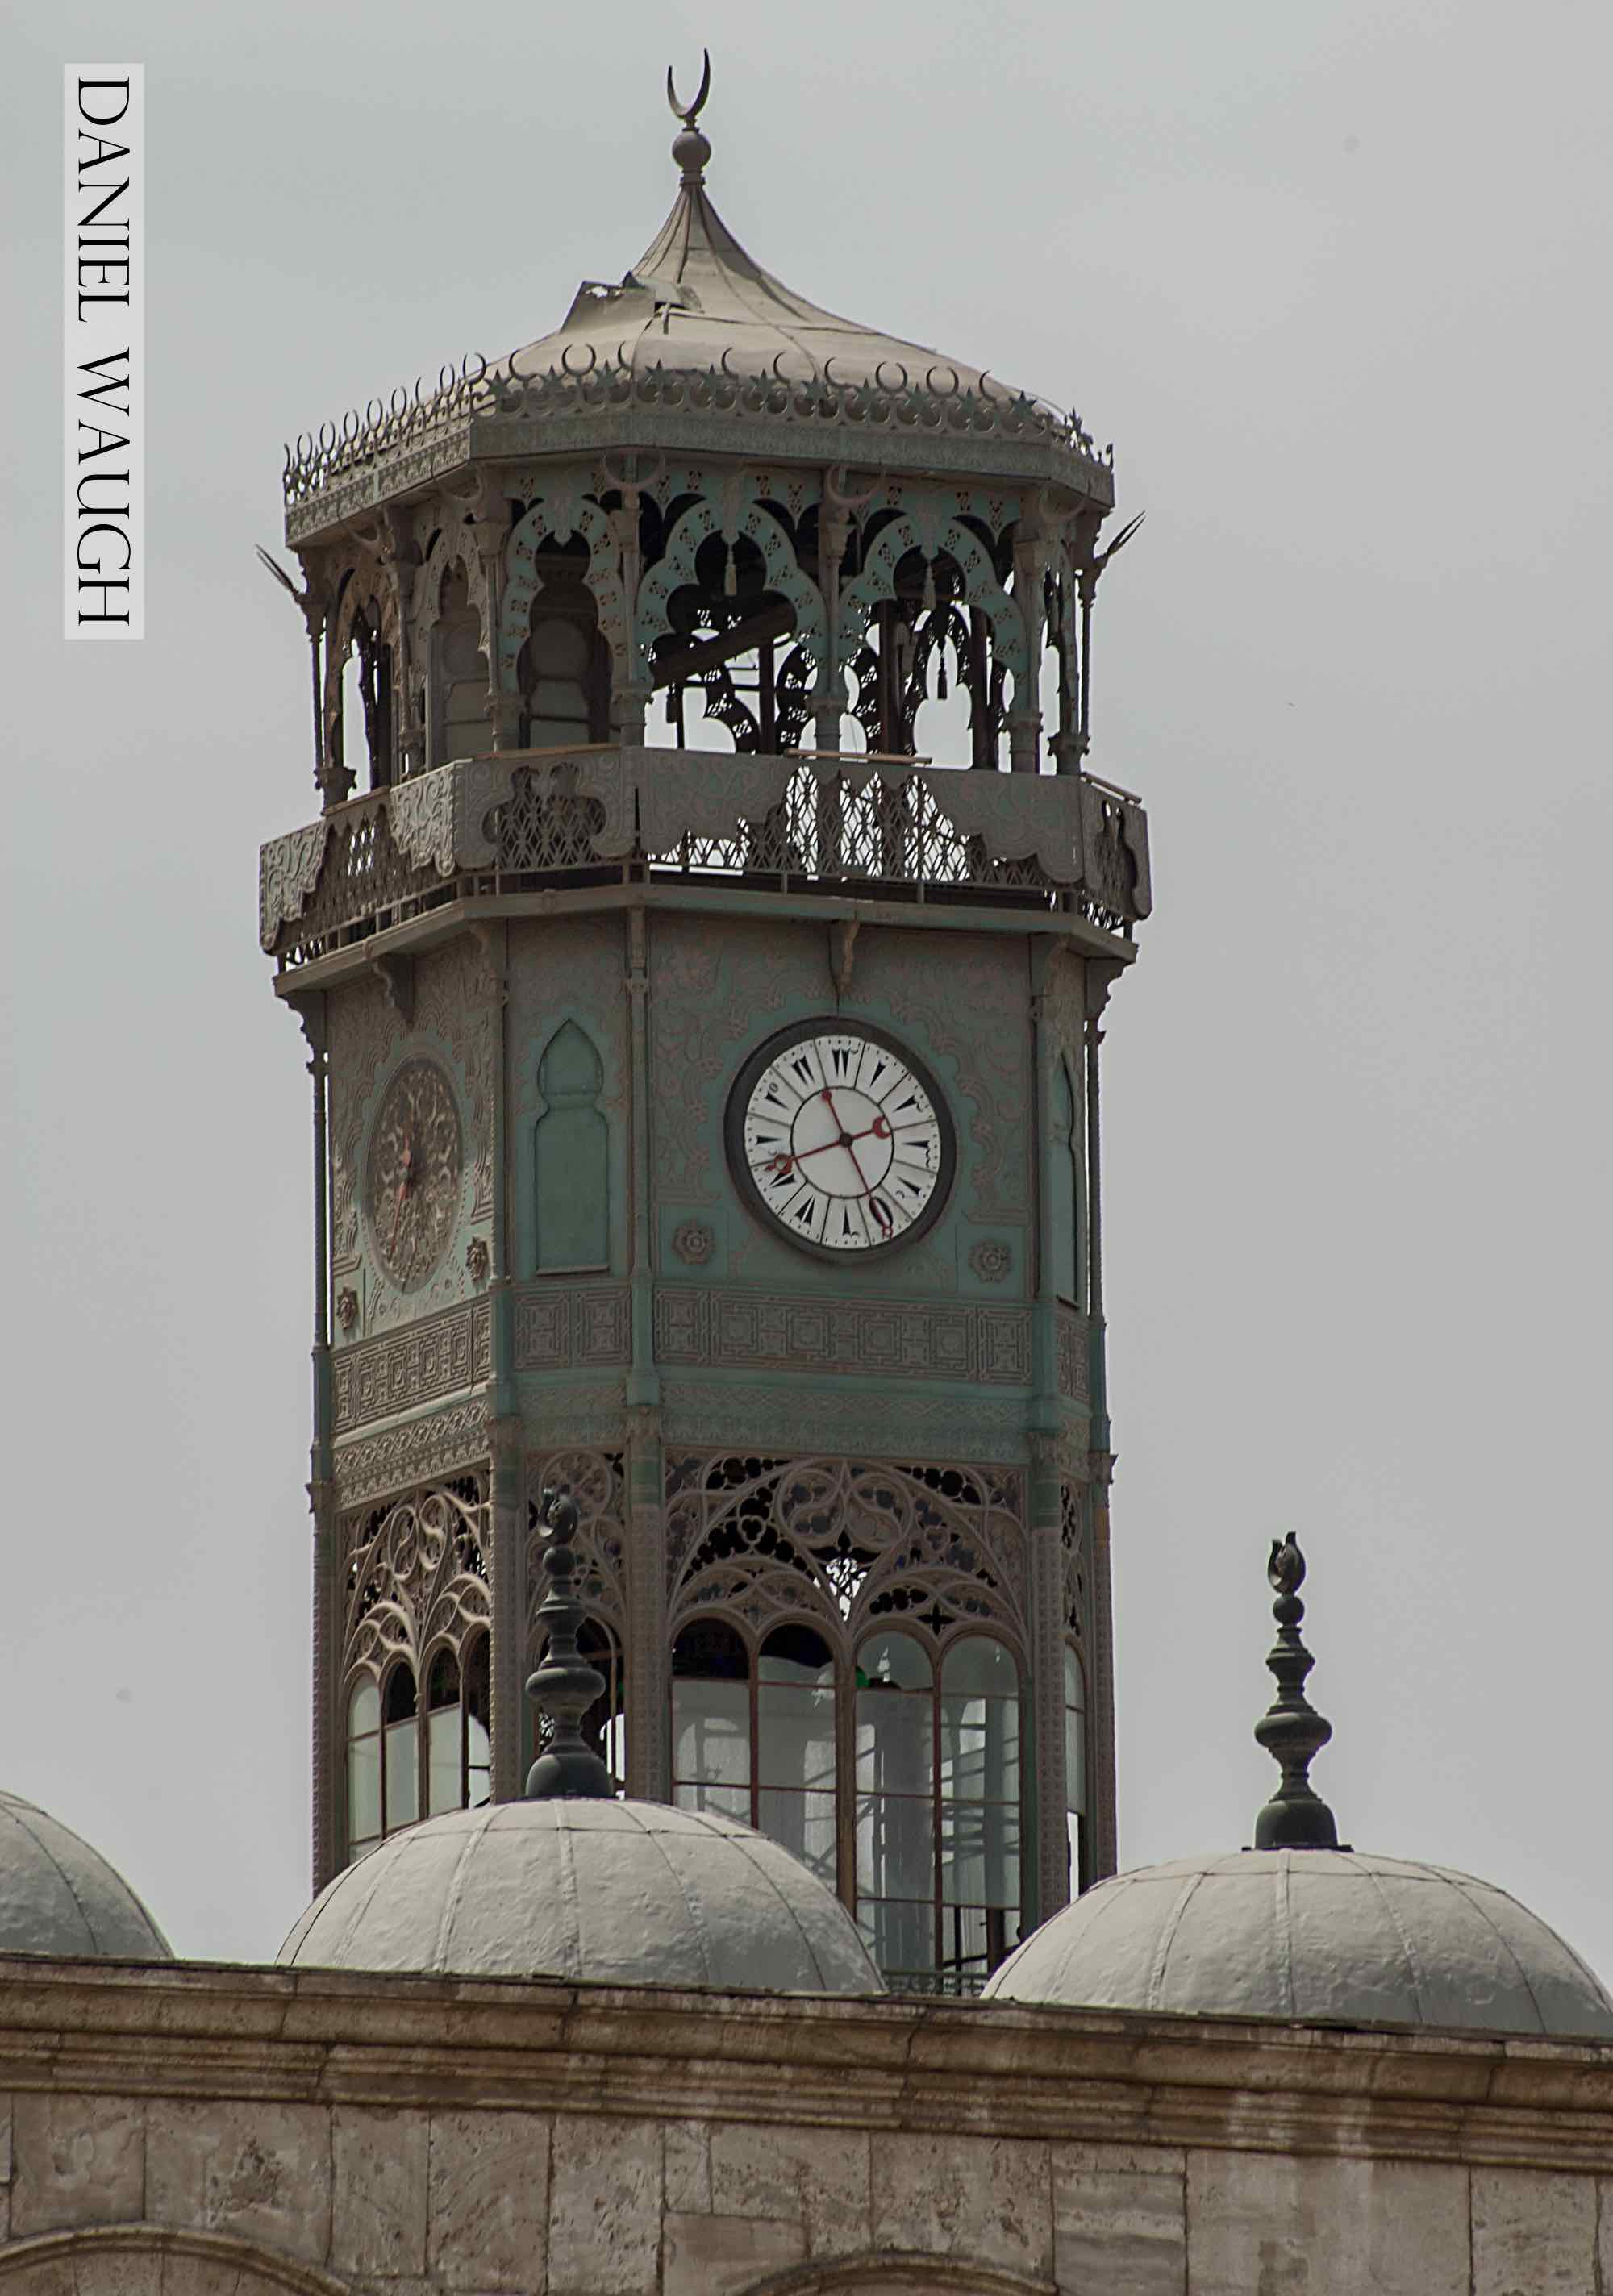 Cairo_MehmetAlimosque3_clocktower